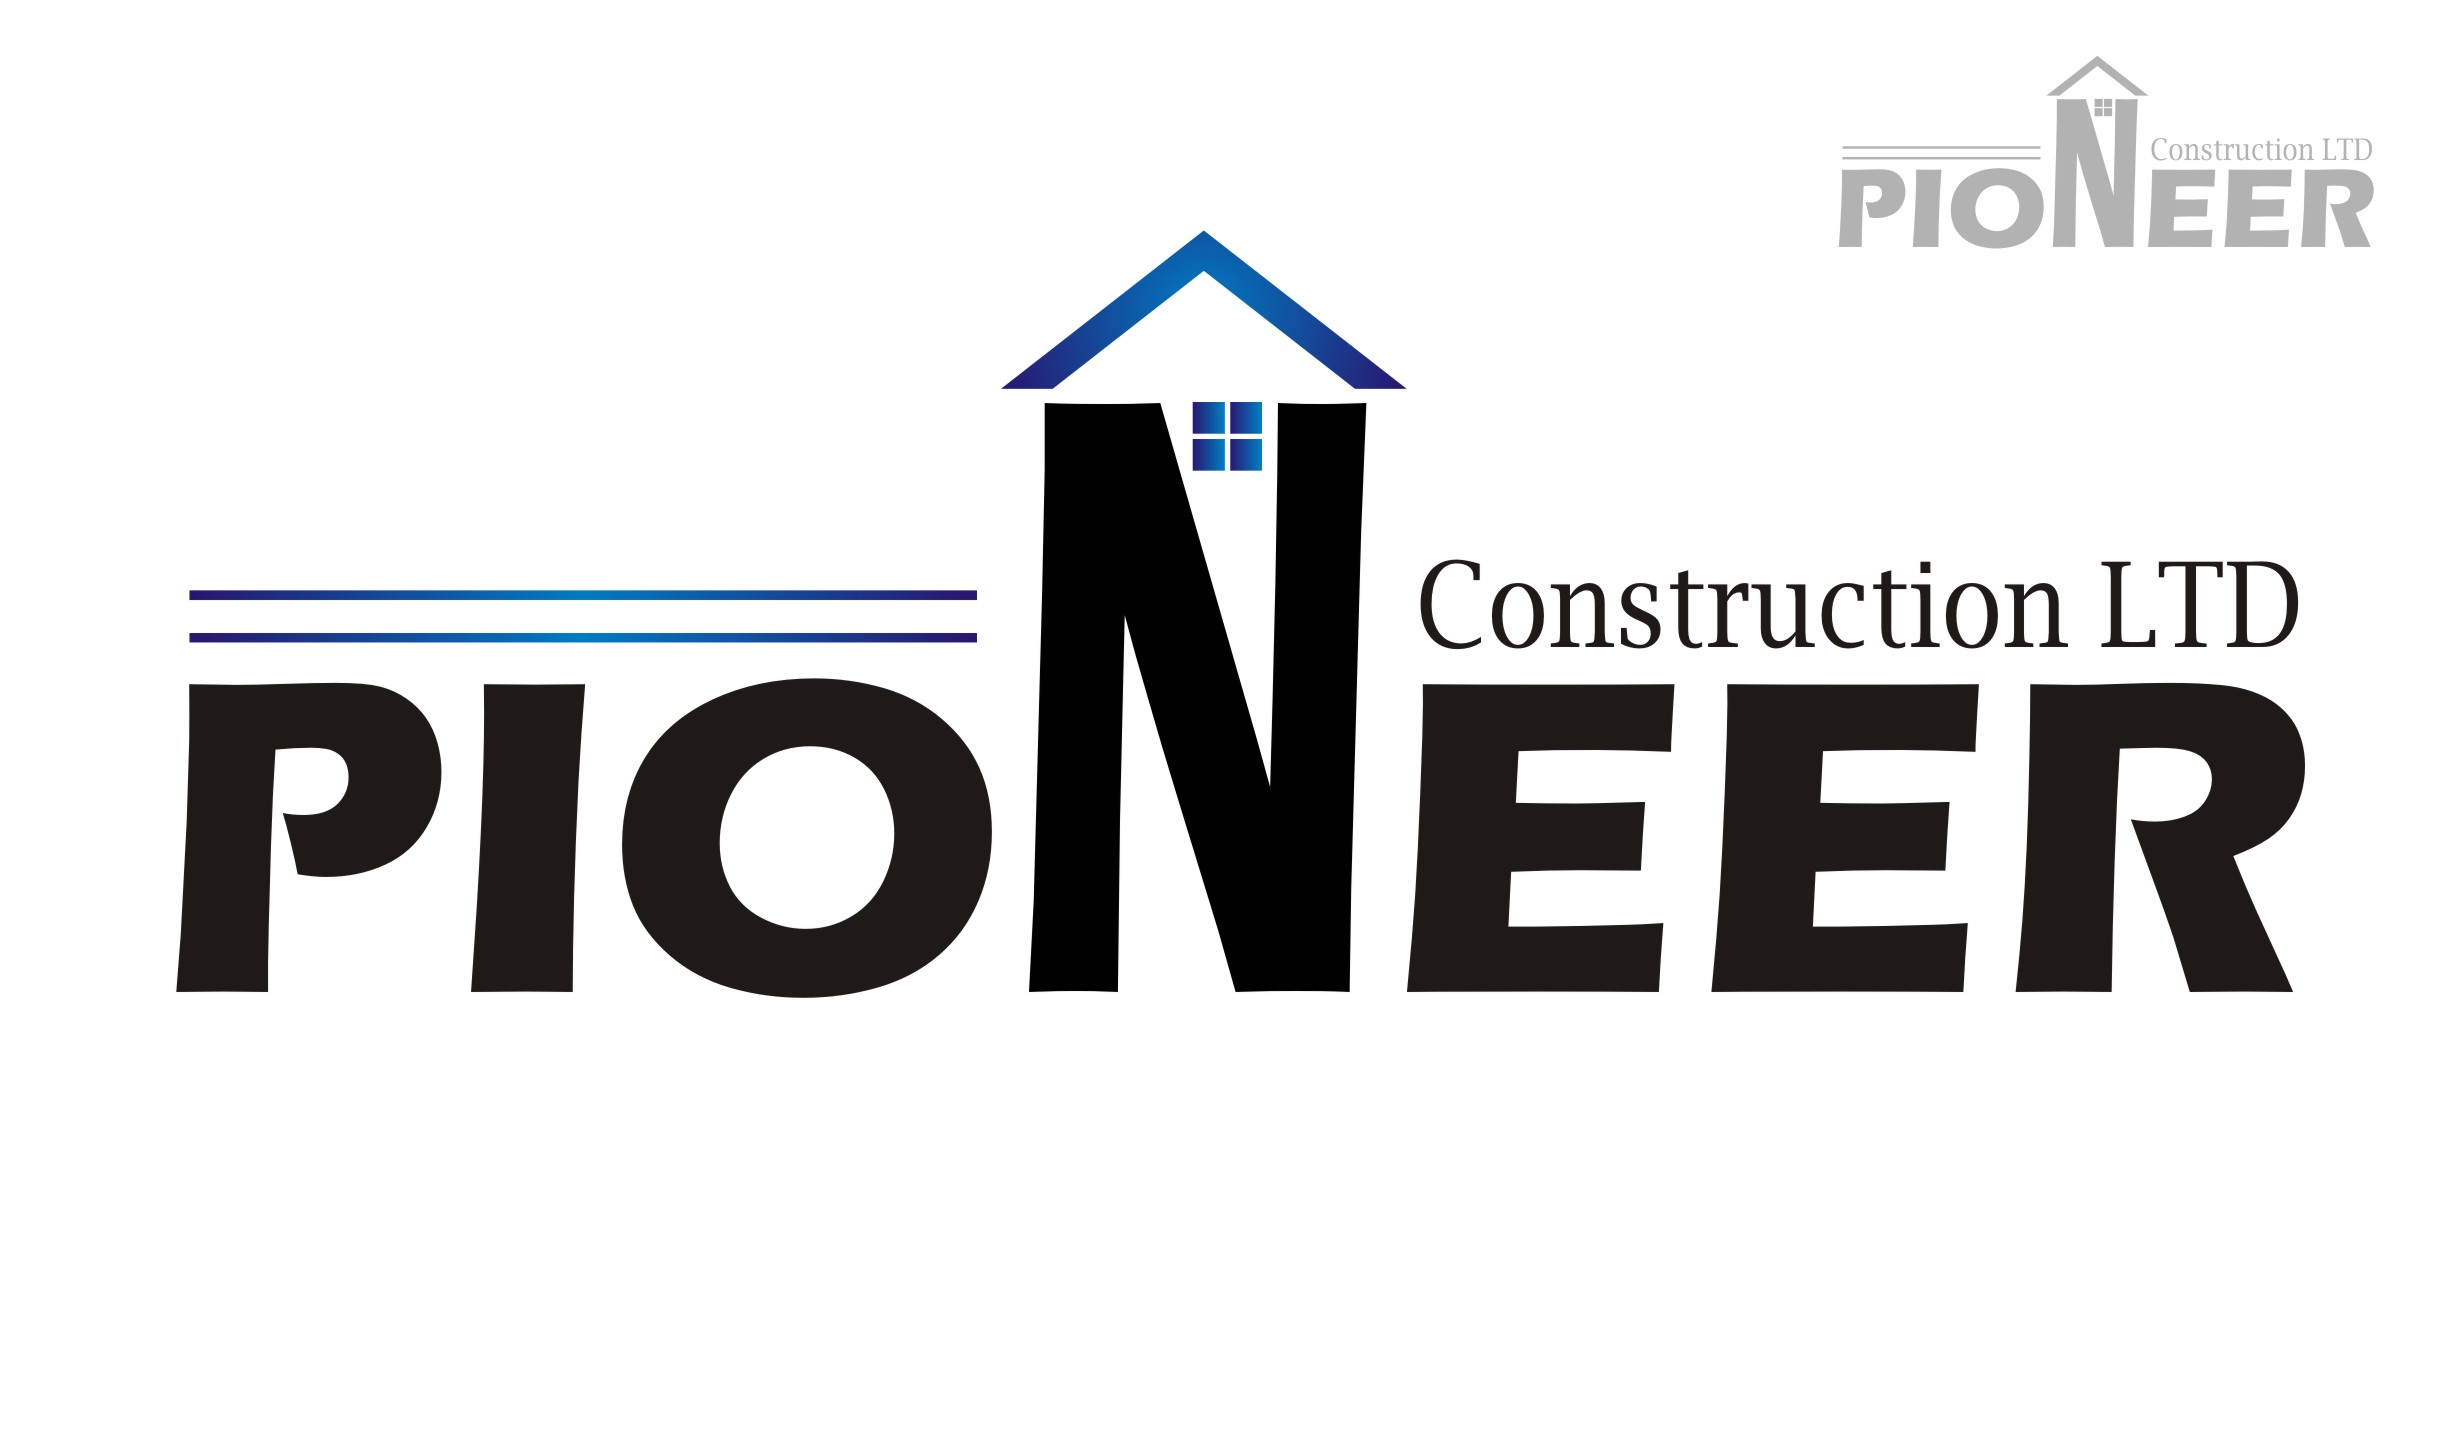 Logo Design by Yuda Hermawan - Entry No. 11 in the Logo Design Contest Imaginative Logo Design for  Pioneer Construction Ltd.